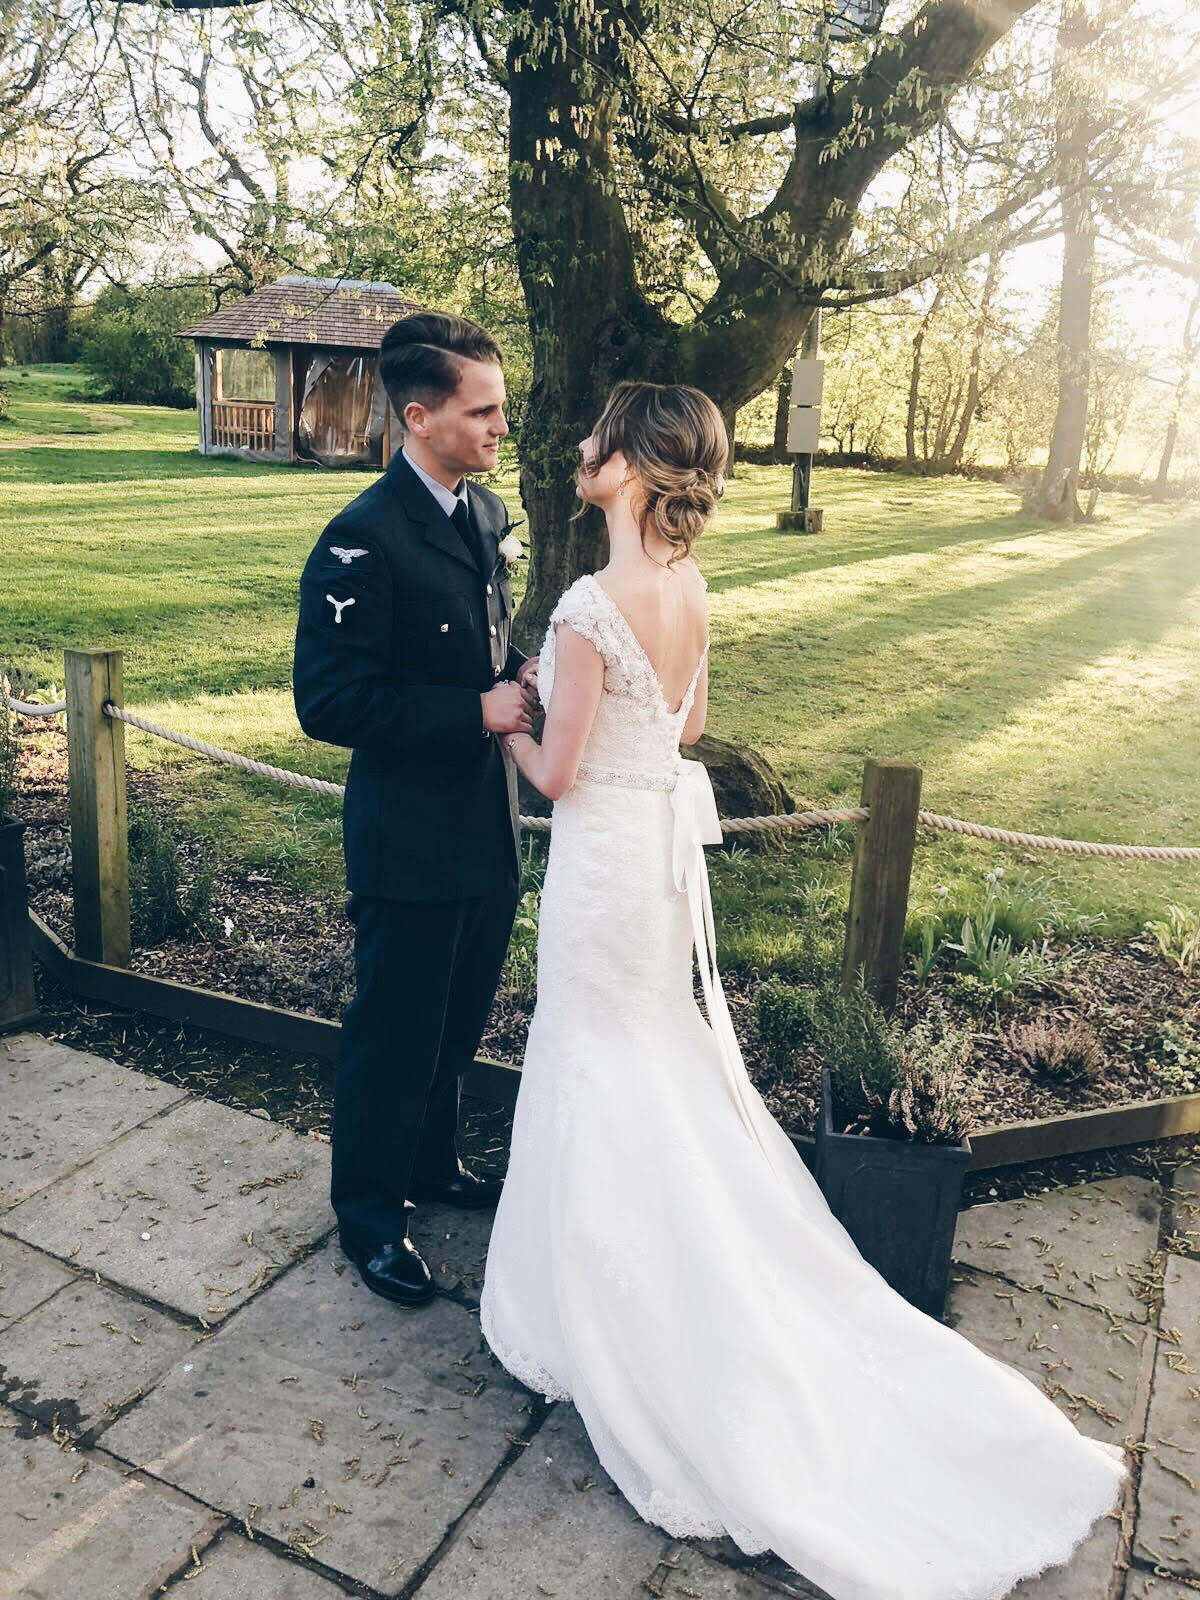 Getting Married, Moving House and New Beginnings